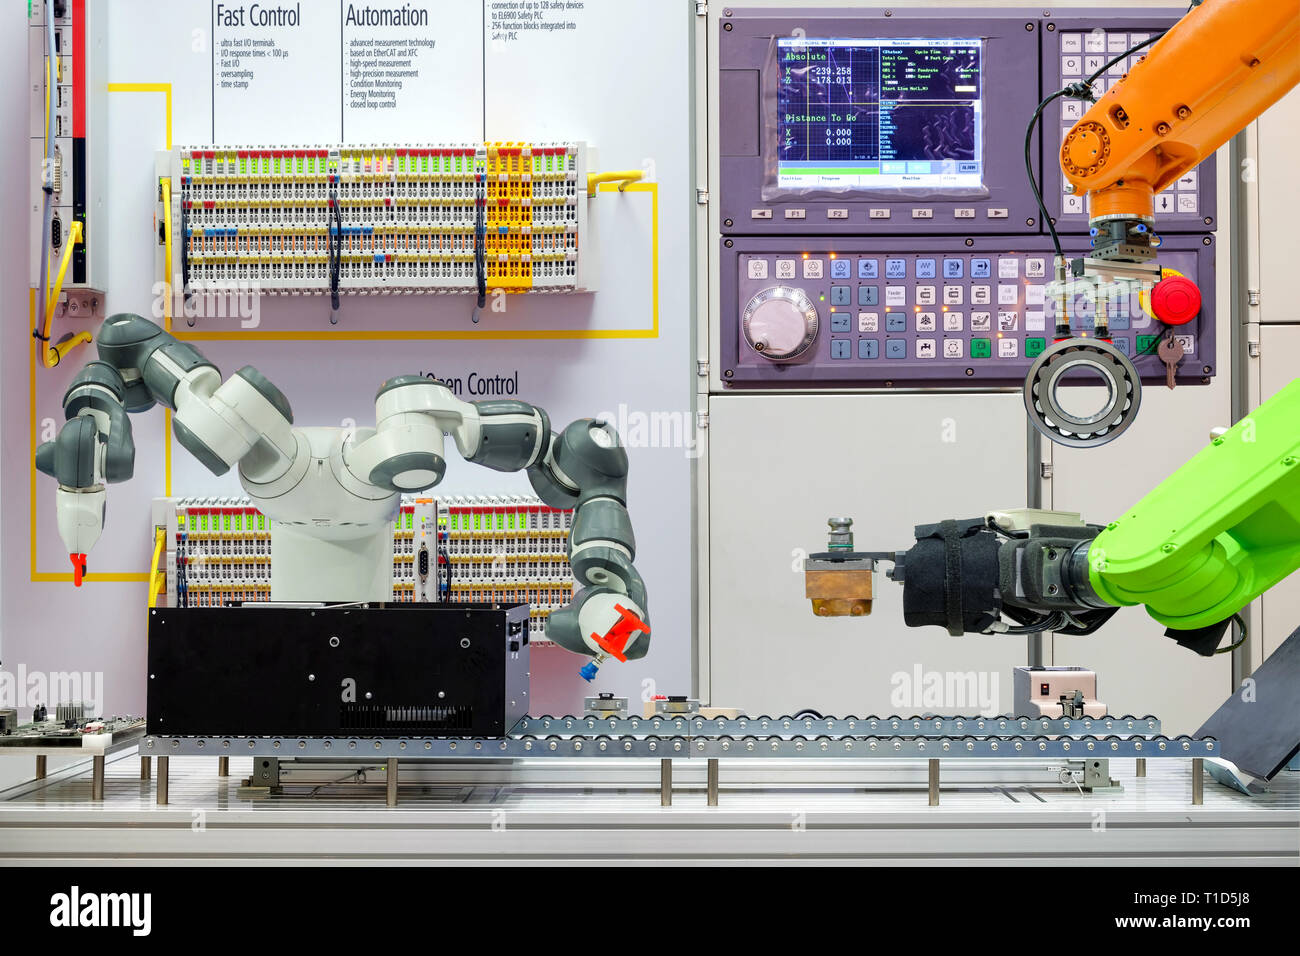 Concept image of industrial robotics  working via conveyor belt on smart factory, terminal and control panel background, industry 4.0 Stock Photo